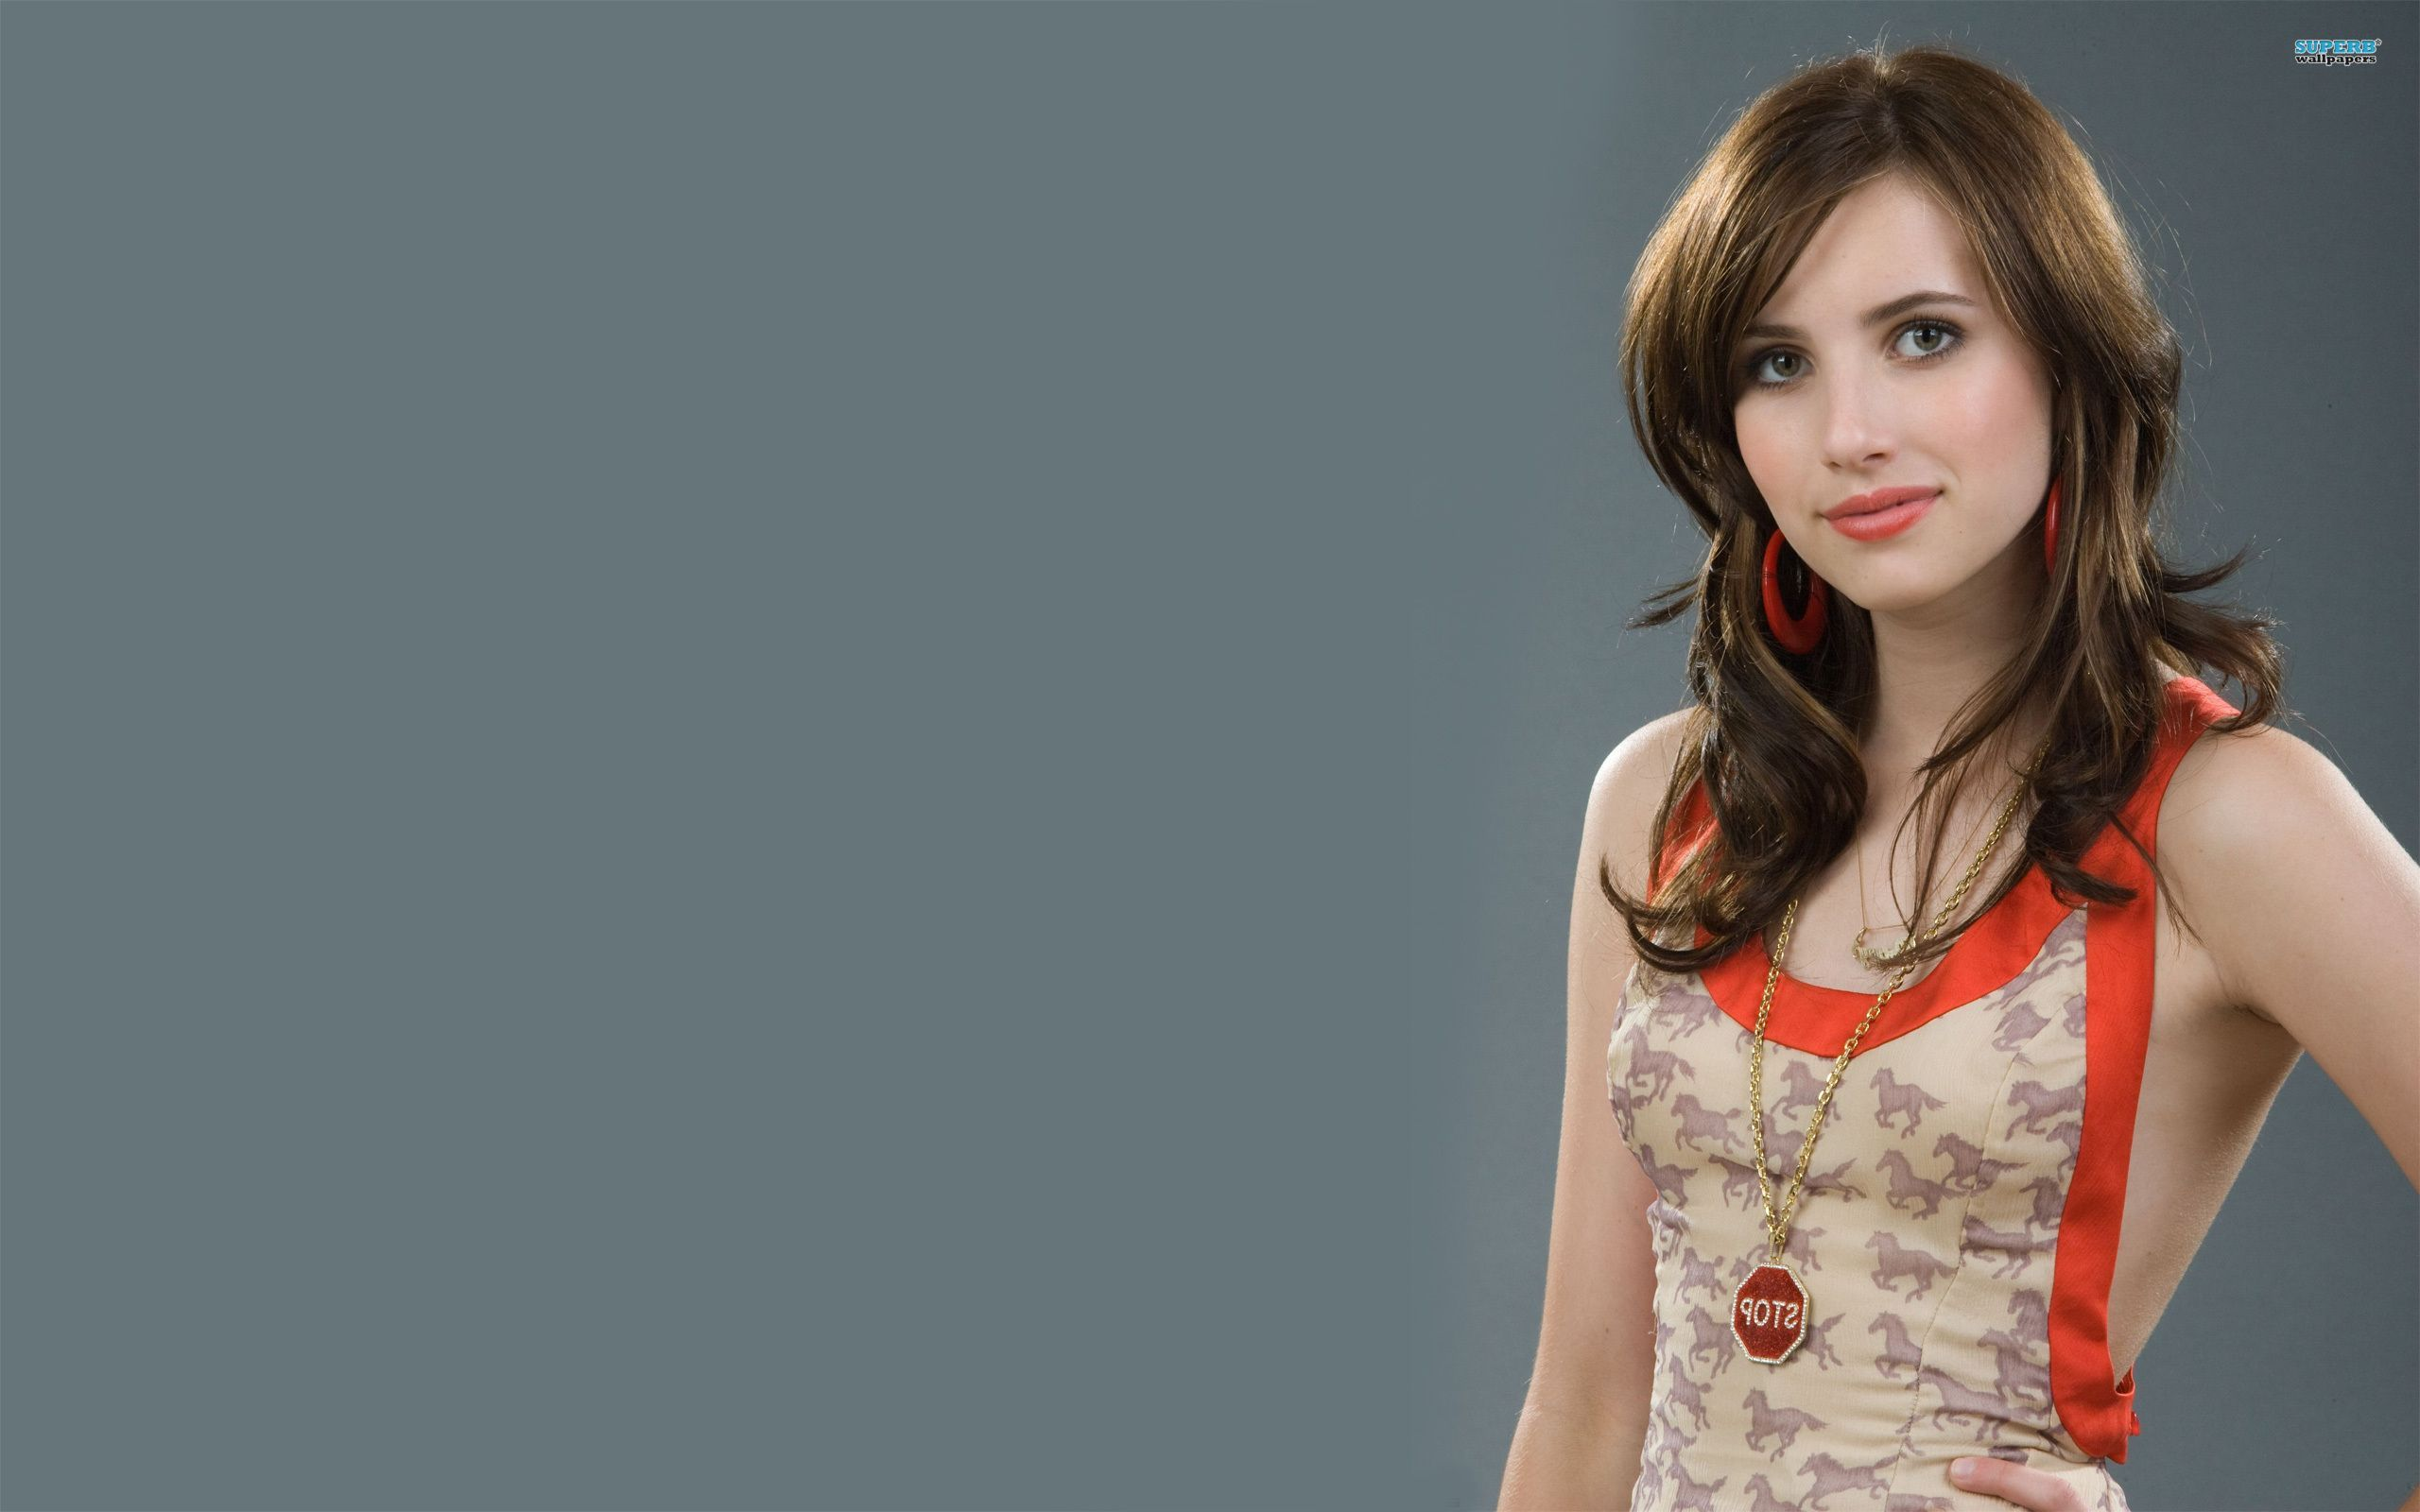 Emma Roberts Wallpapers 100 Quality Hd Images